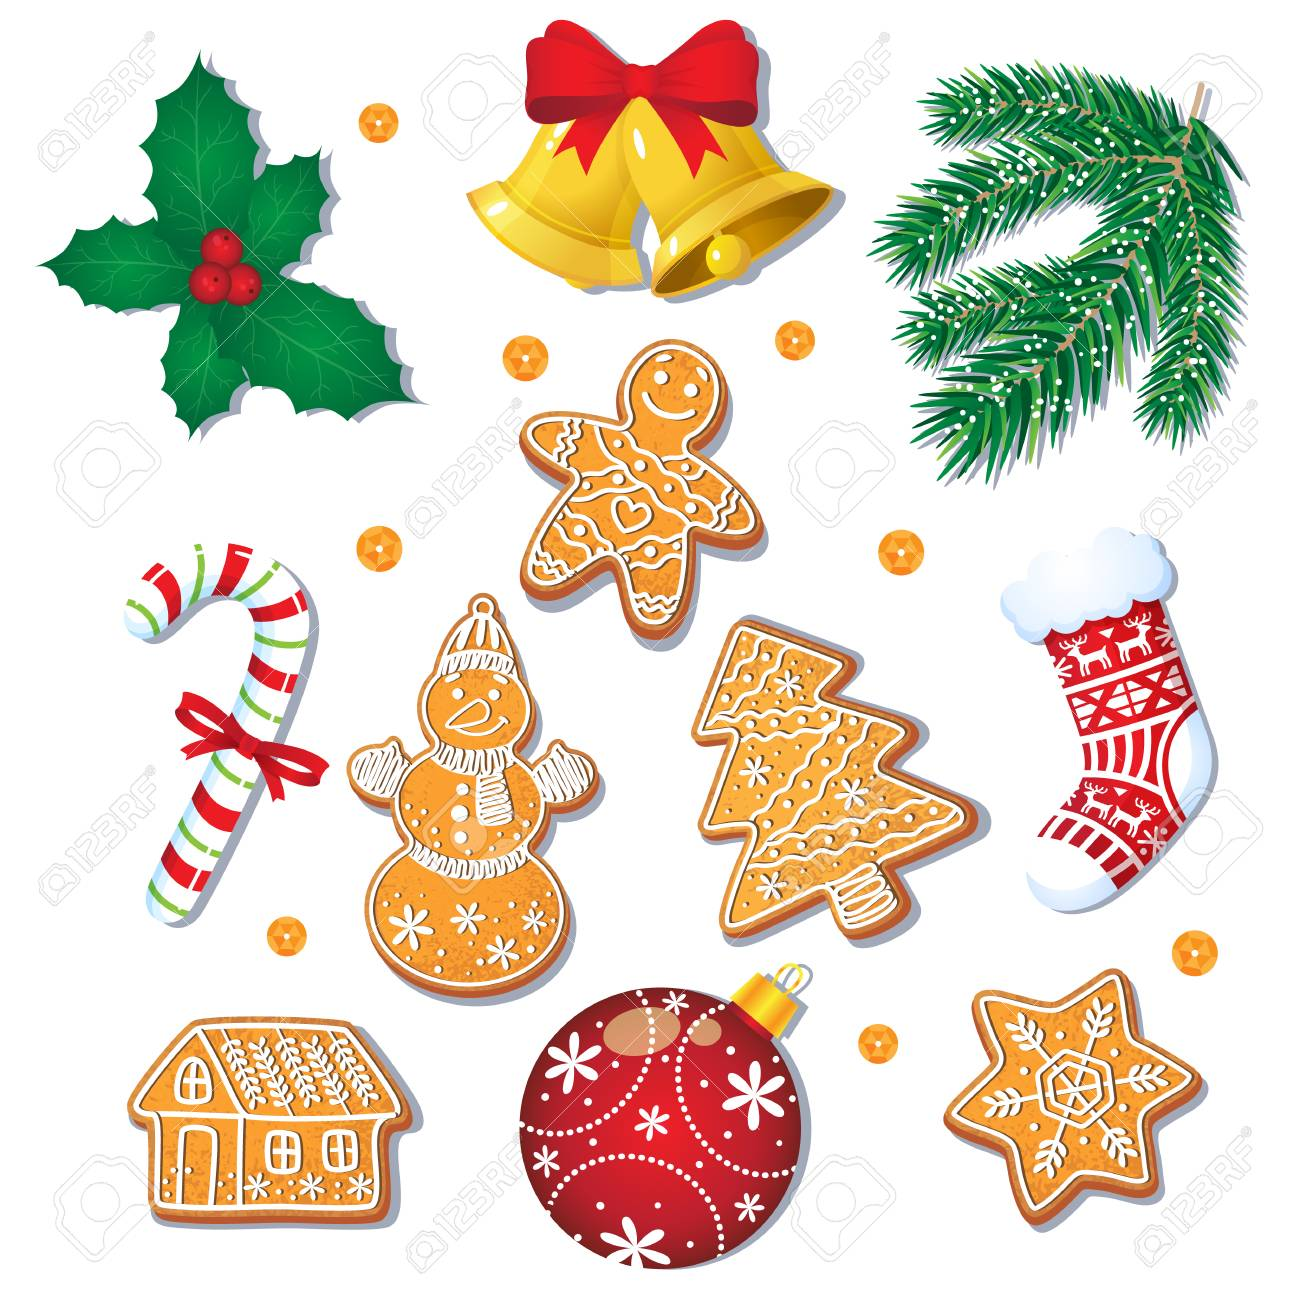 Good Christmas Decorations Cartoon Pictures Part - 9: Big Set Of Glazed Christmas Gingerbread Cookies And Decorations, Fir Tree,  Mistletoe, Candy